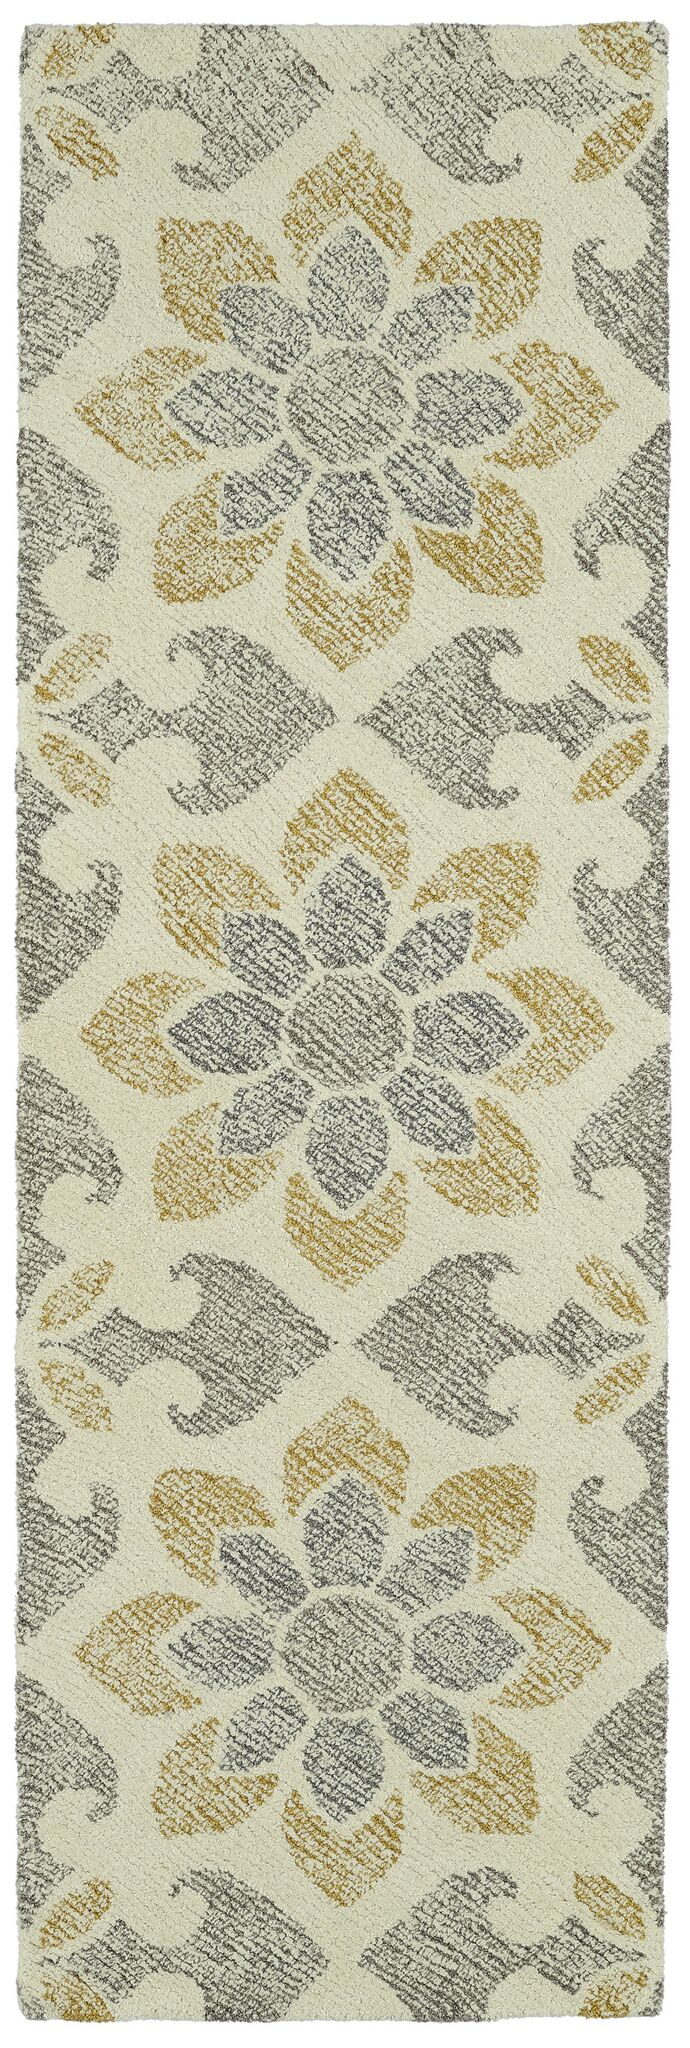 Rosalind Hand-Tufted Wool Gray/Yellow Area Rug Rug Size: Runner 2'6